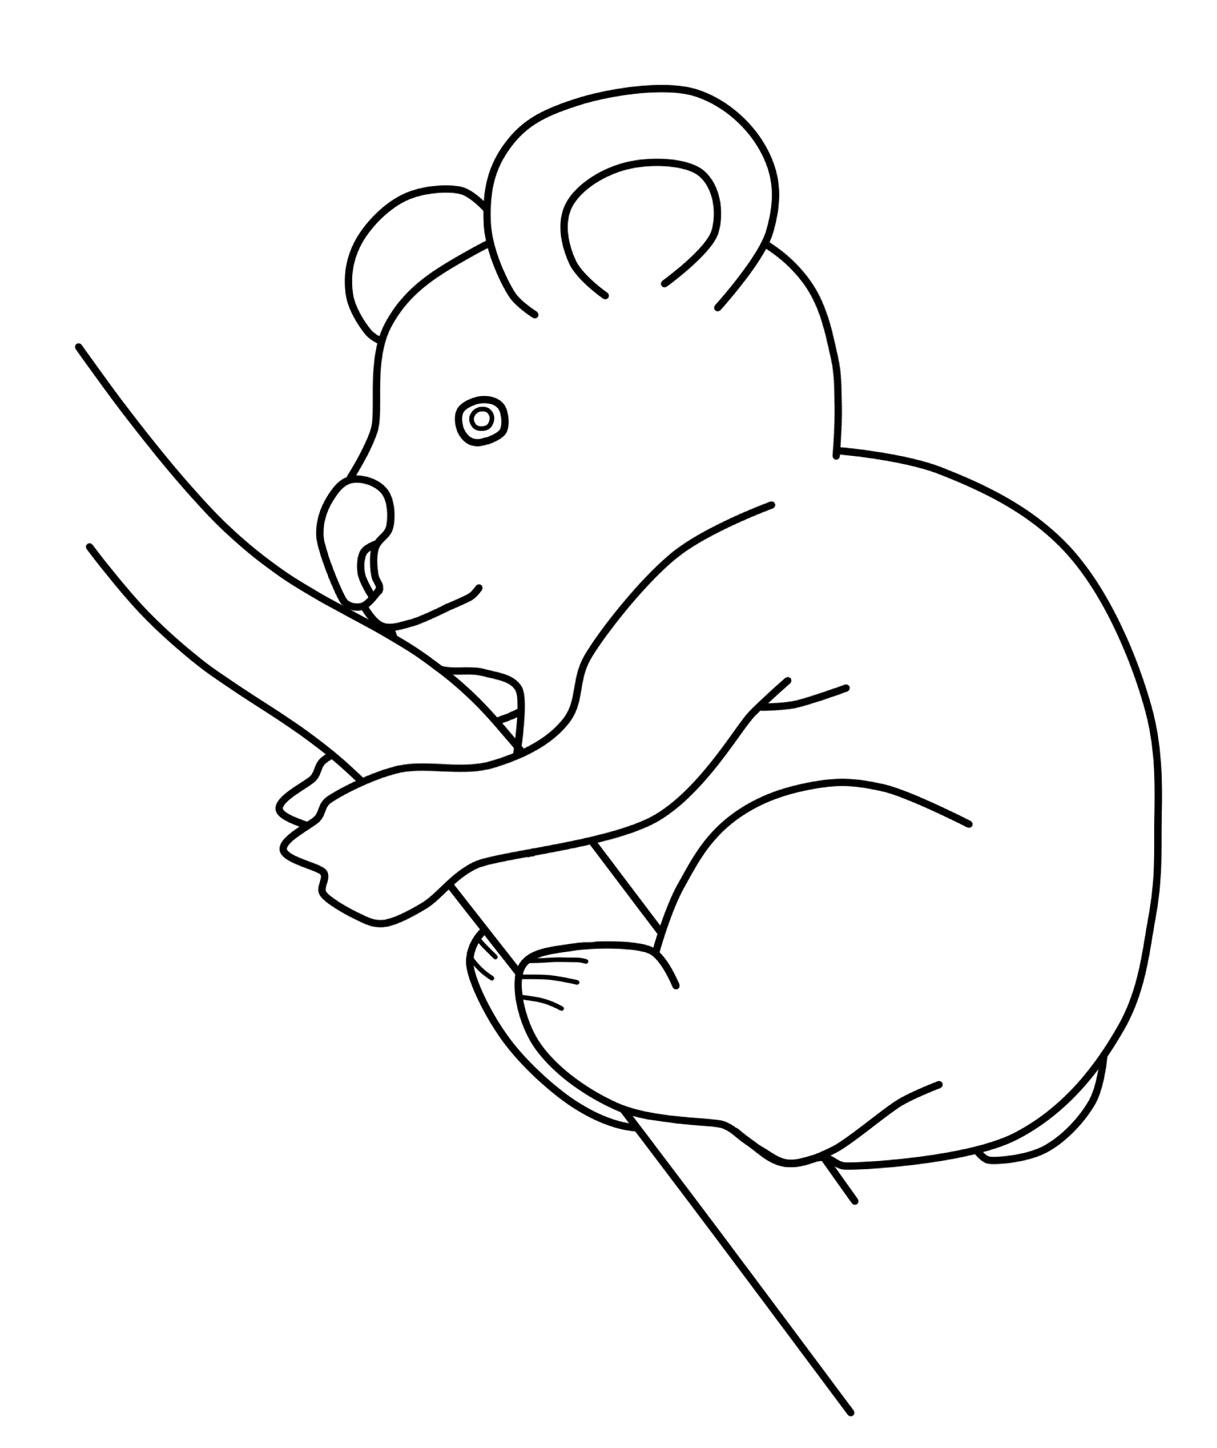 Free Printable Koala Coloring Pages For Kids | Animal Place